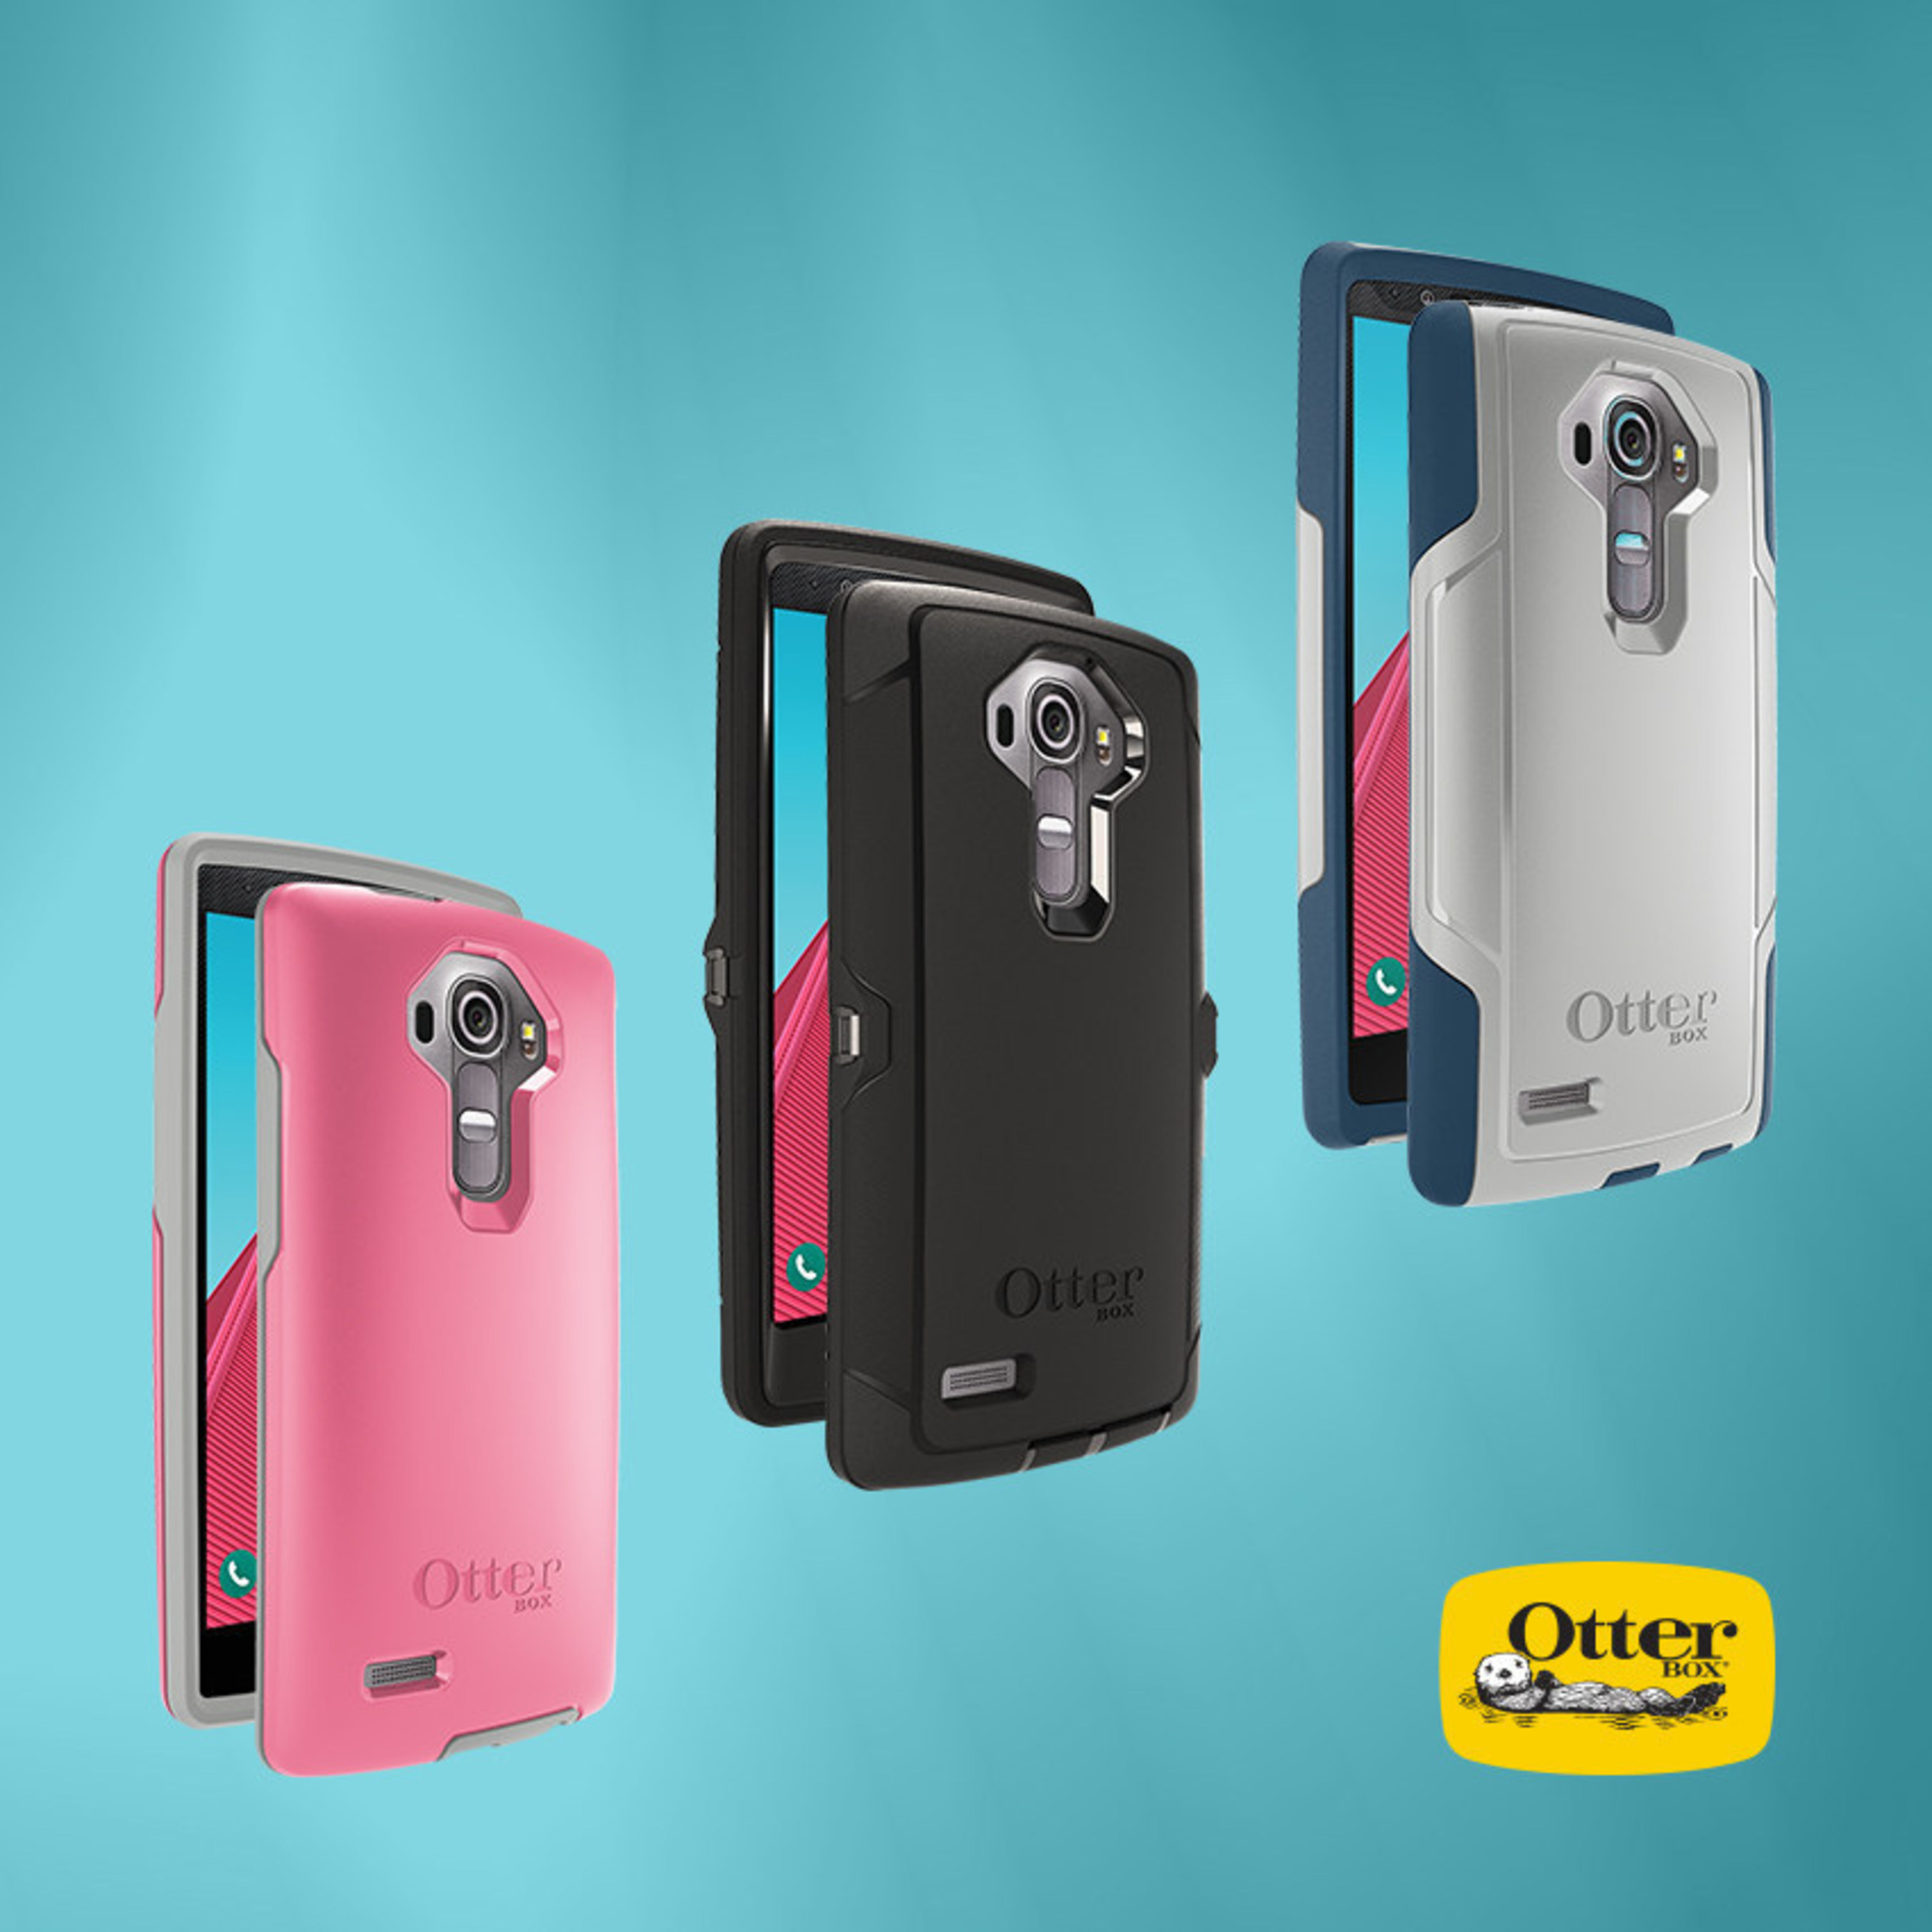 OtterBox makes the case for LG G4, available now on otterbox.com.